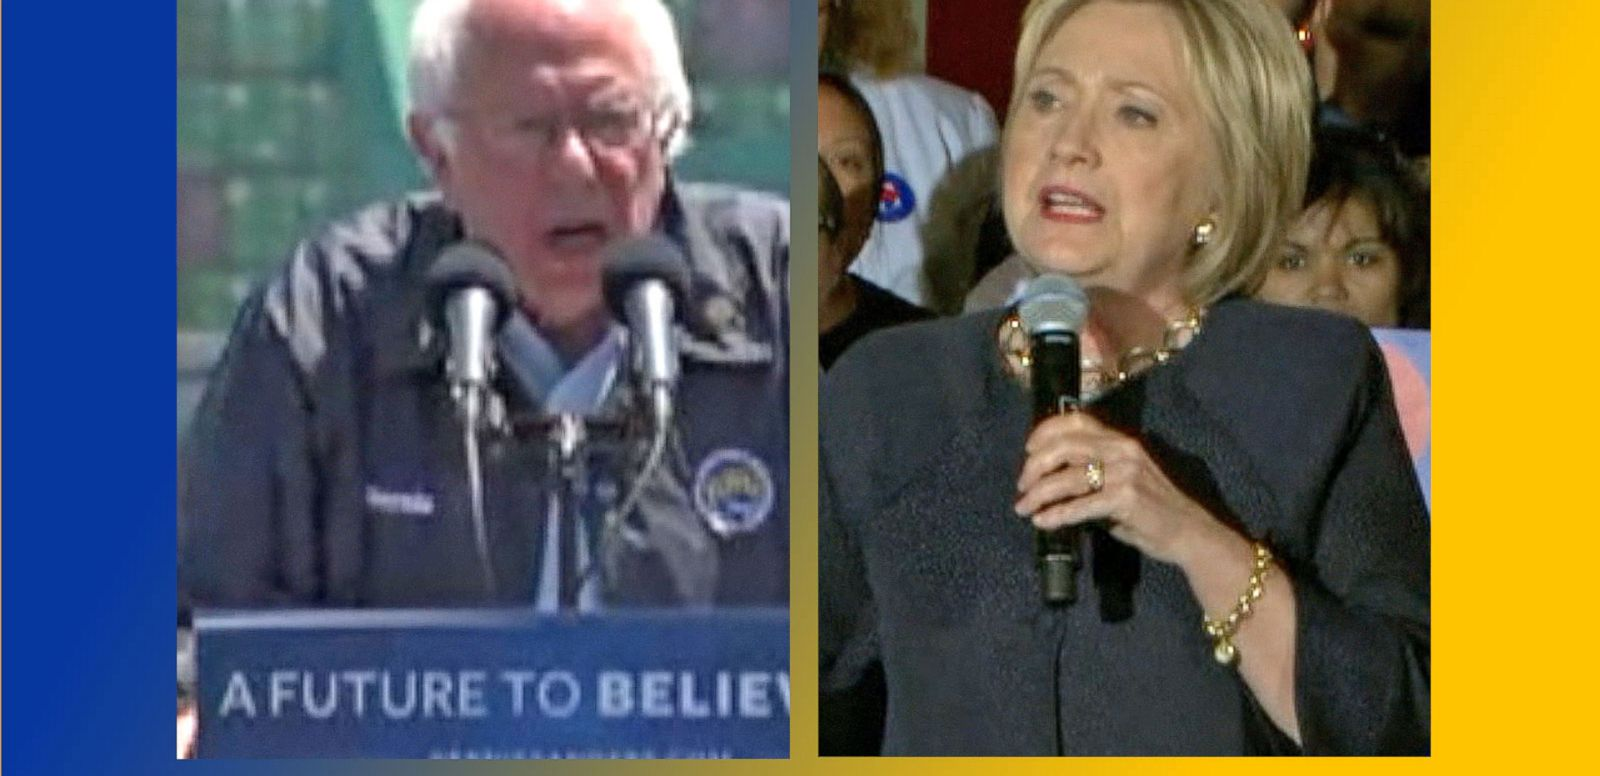 VIDEO: Hillary Clinton, Bernie Sanders Focus on California Primary Battle